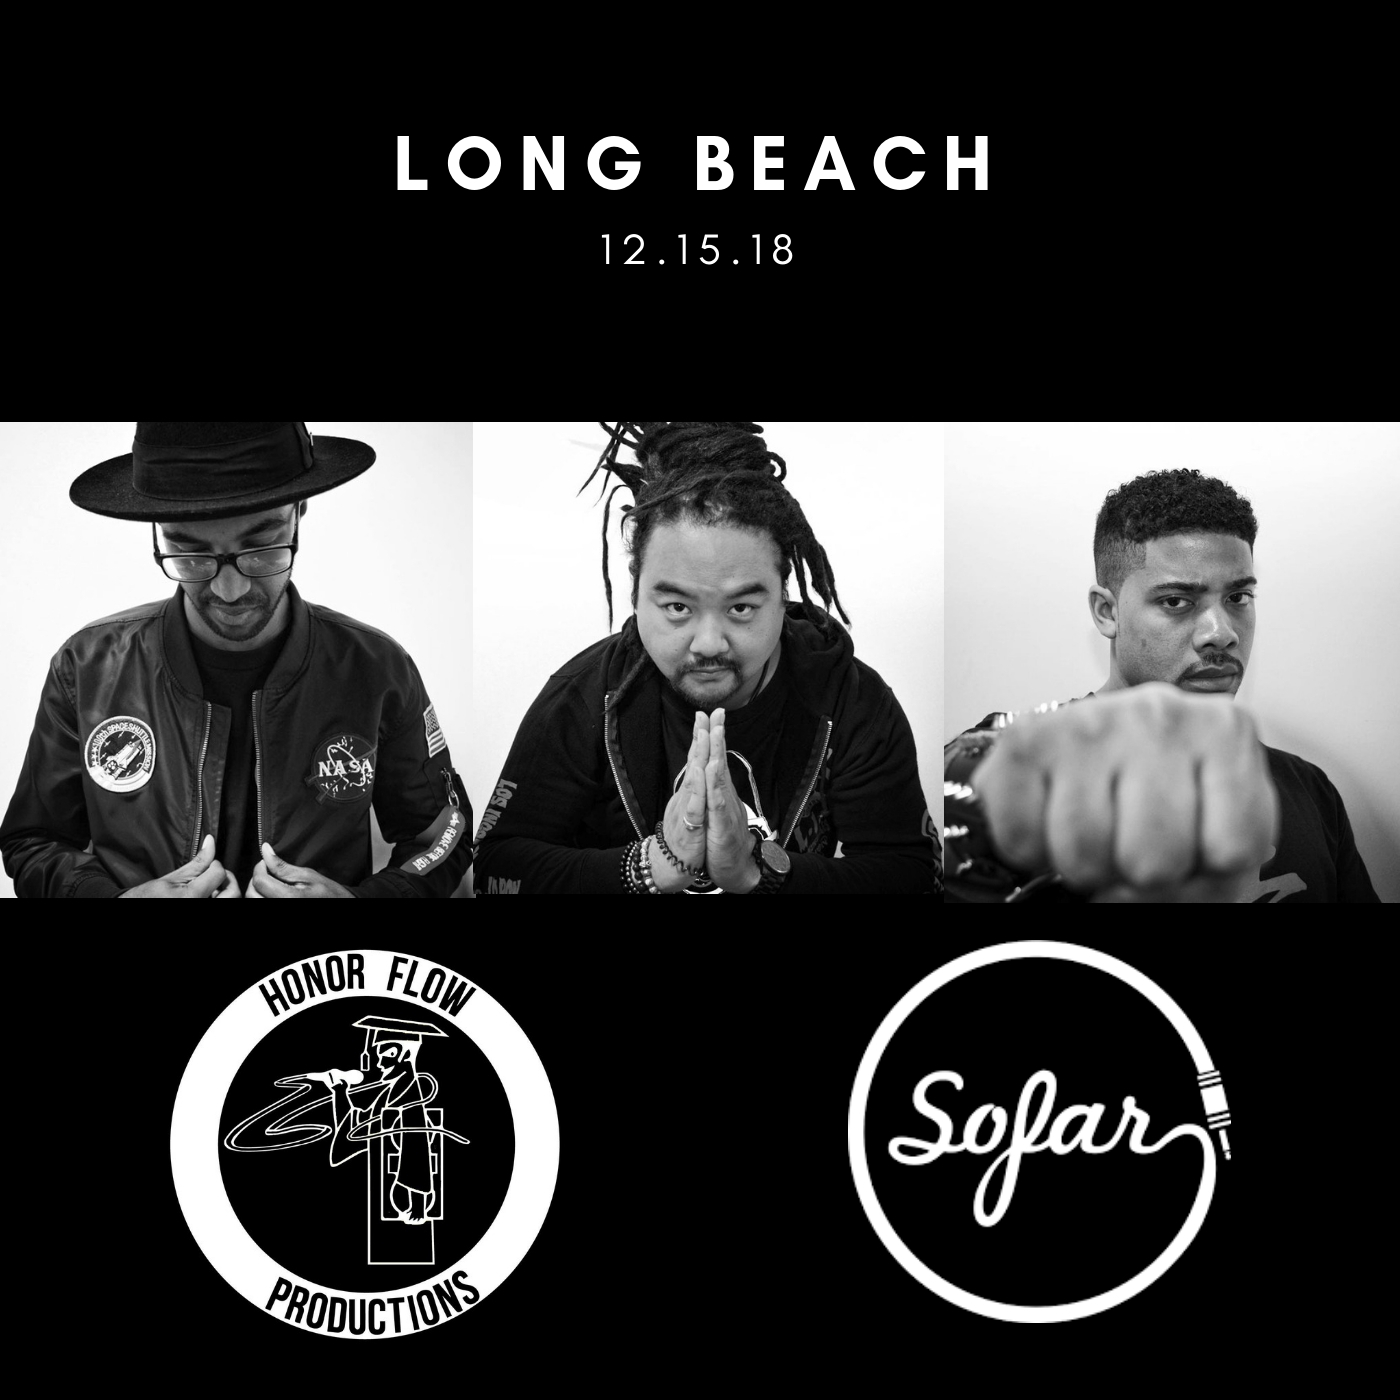 Sofar Sounds LBC X HFP Flyer (12.15.18).jpg